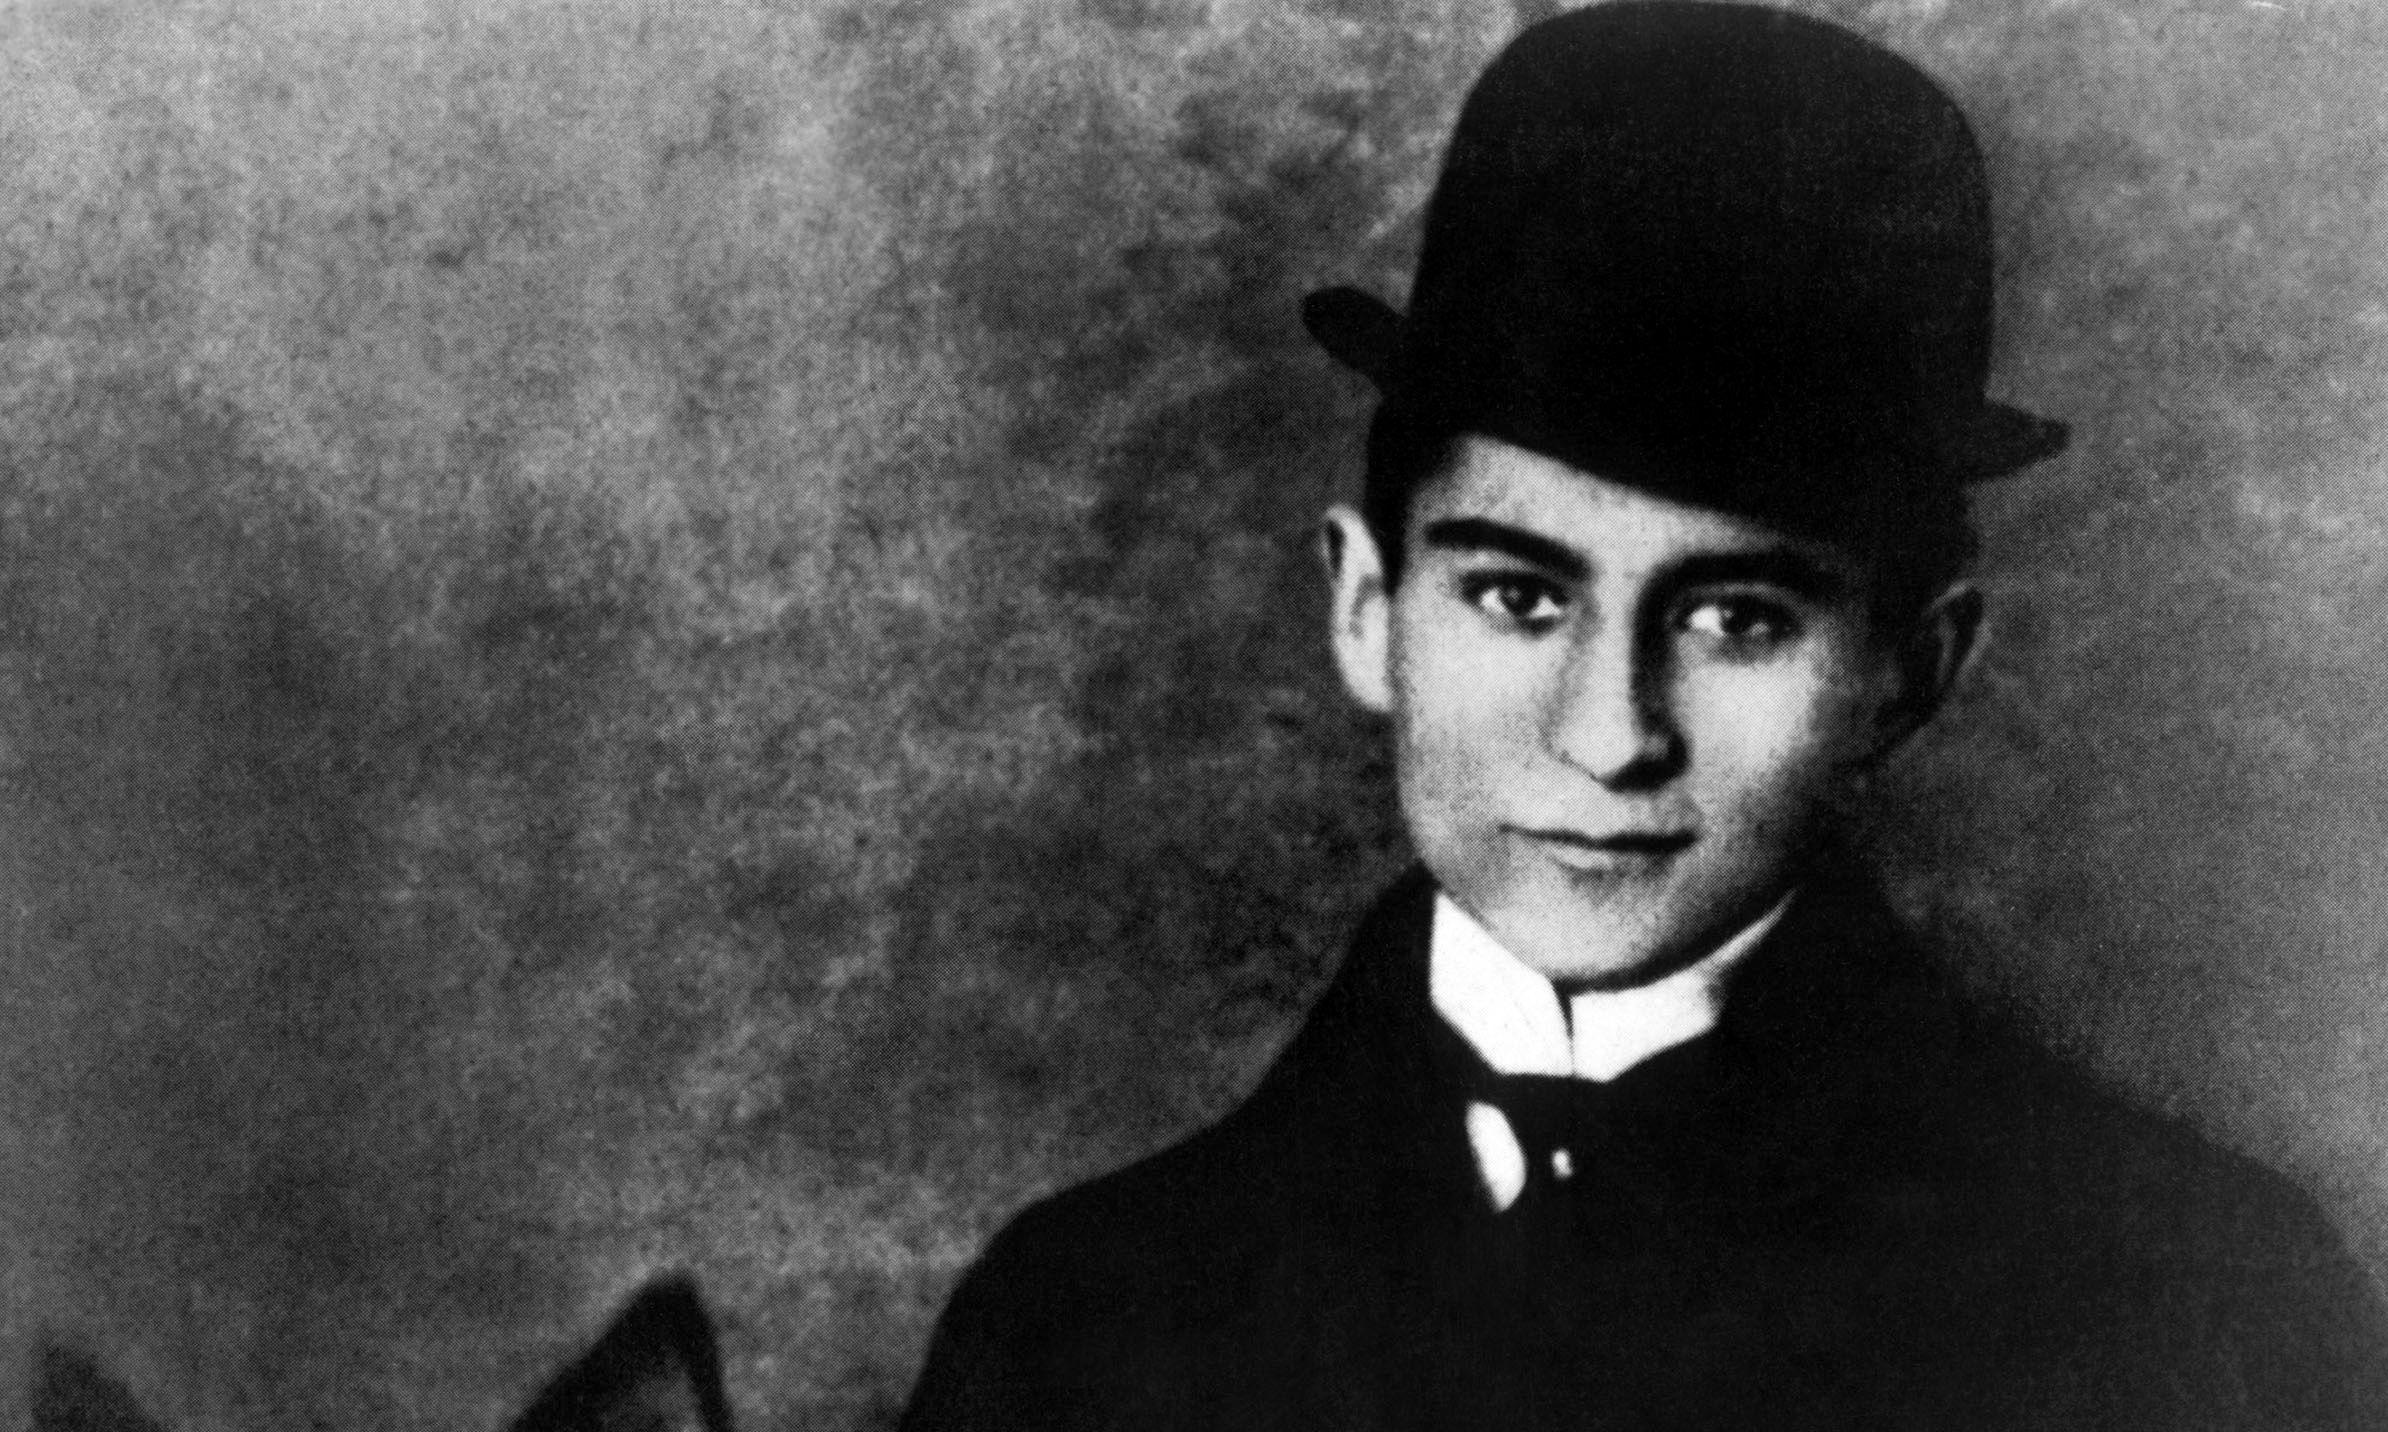 Unseen Kafka works may soon be revealed after Kafkaesque trial